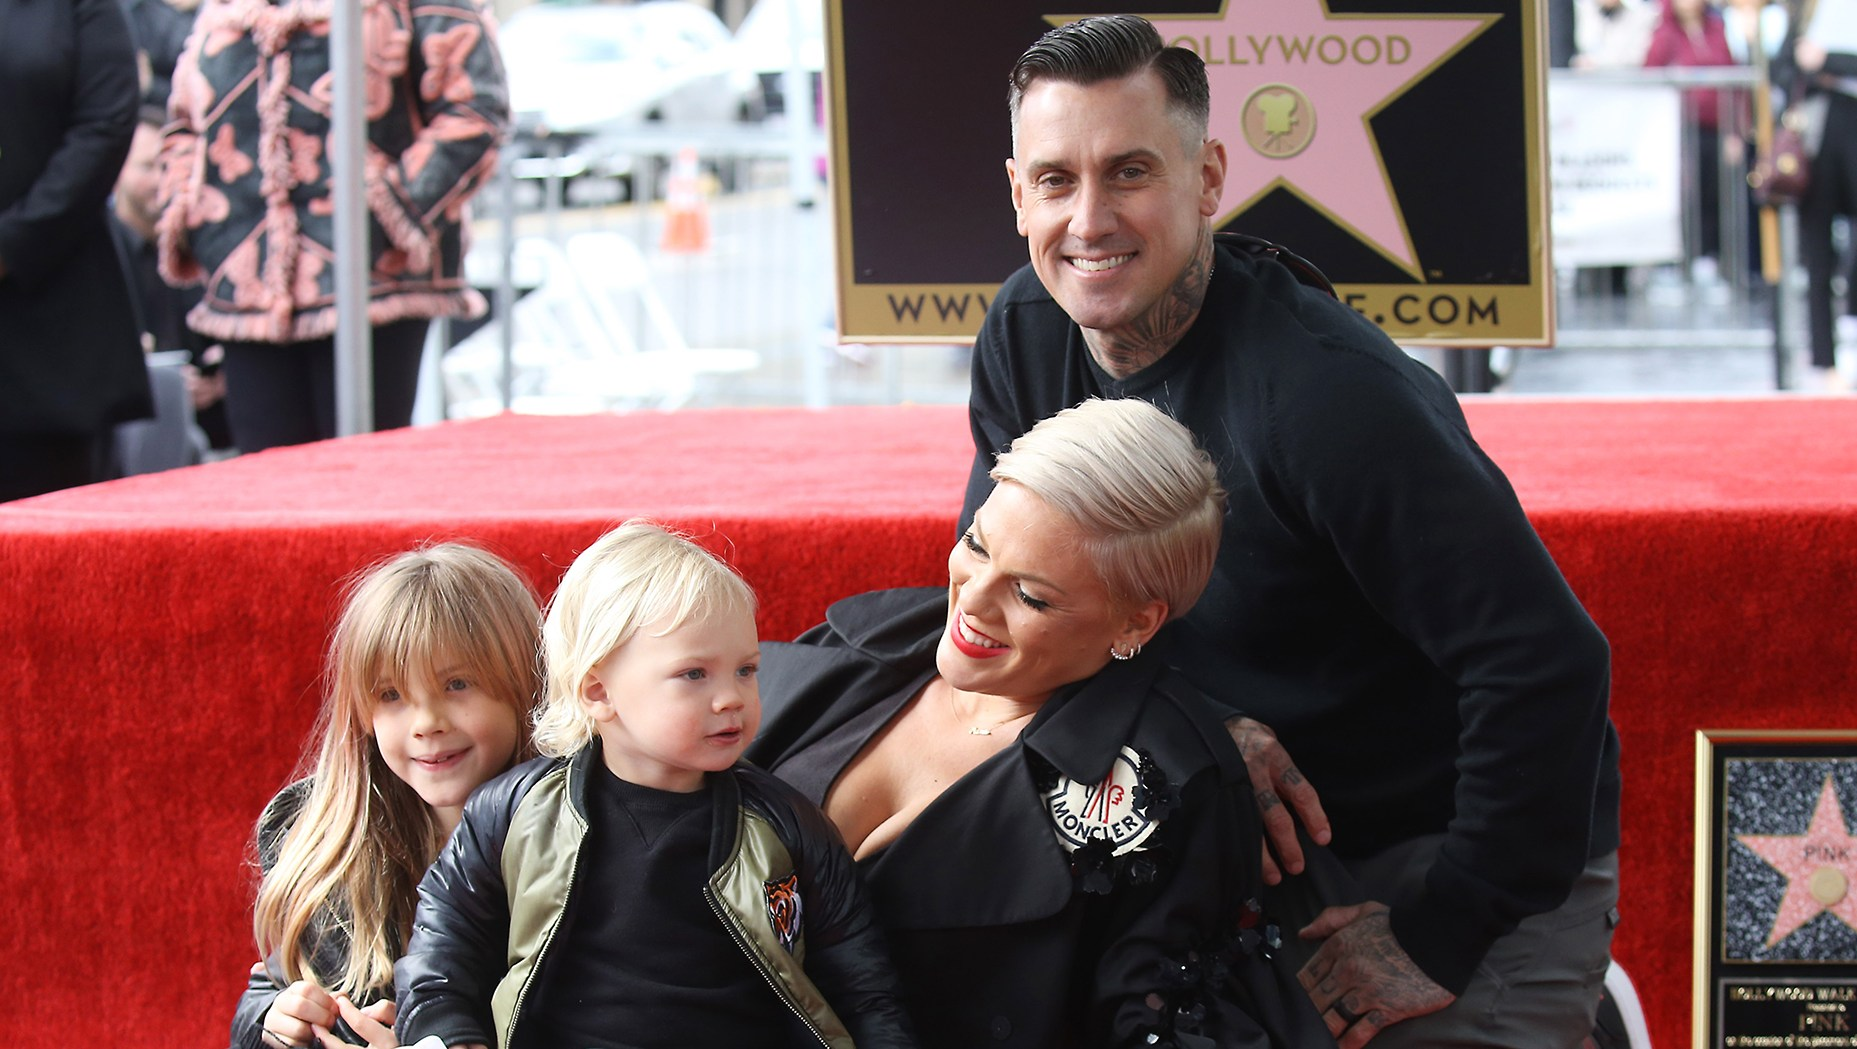 Pink and Carey Hart's 7-Year-Old Daughter Willow Fundraises for Sloths While on Tour: She's 'Ahead of Her Time'